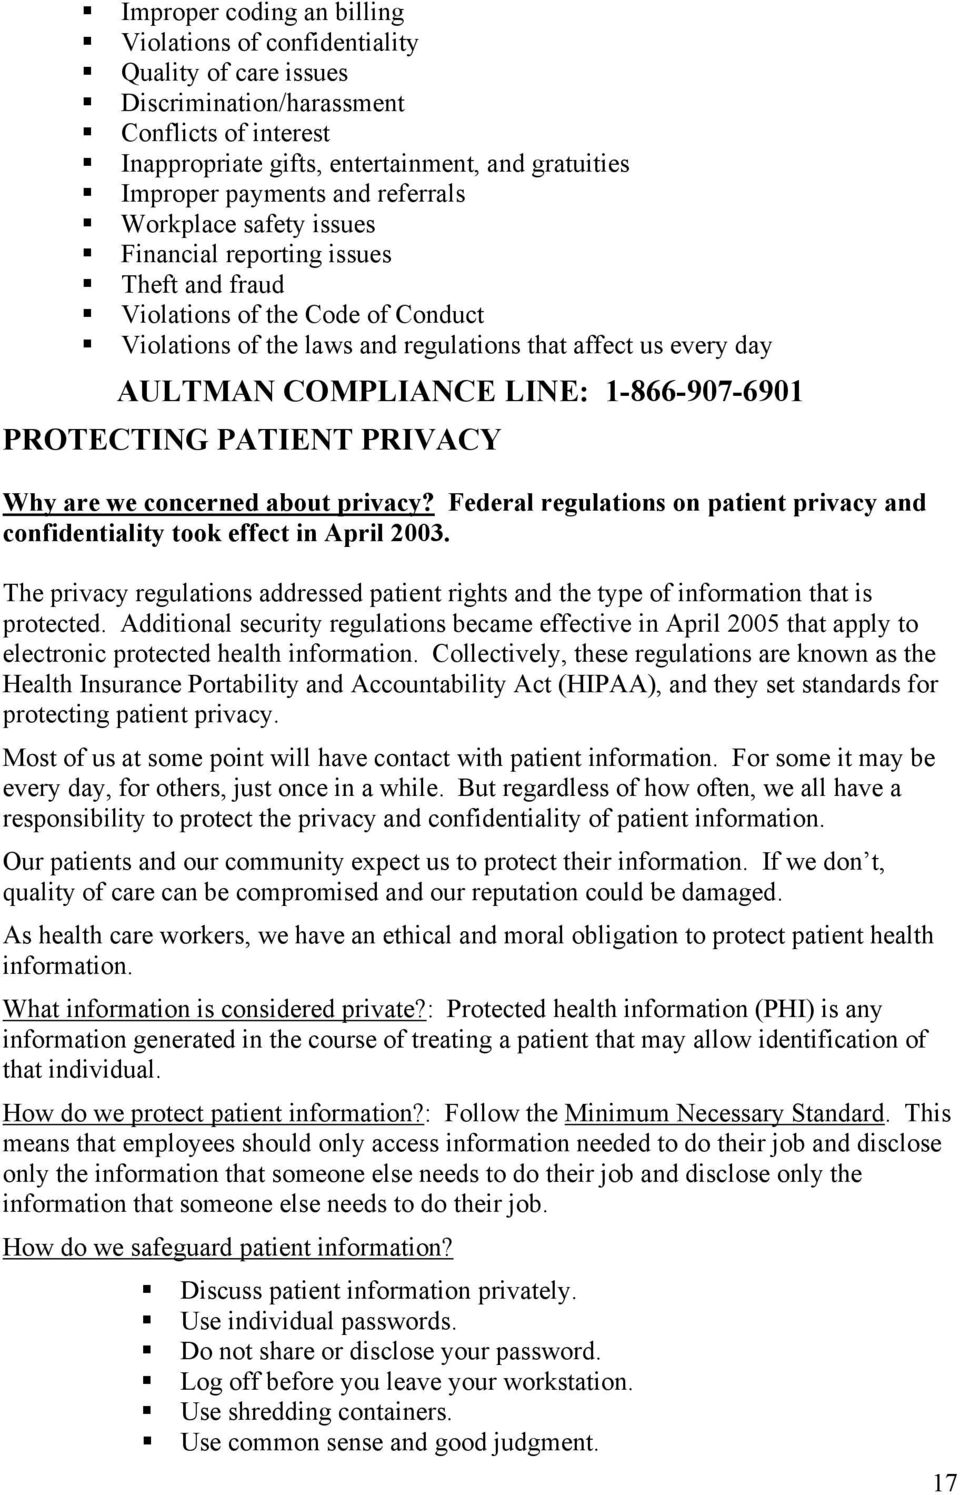 LINE: 1-866-907-6901 PROTECTING PATIENT PRIVACY Why are we concerned about privacy? Federal regulations on patient privacy and confidentiality took effect in April 2003.